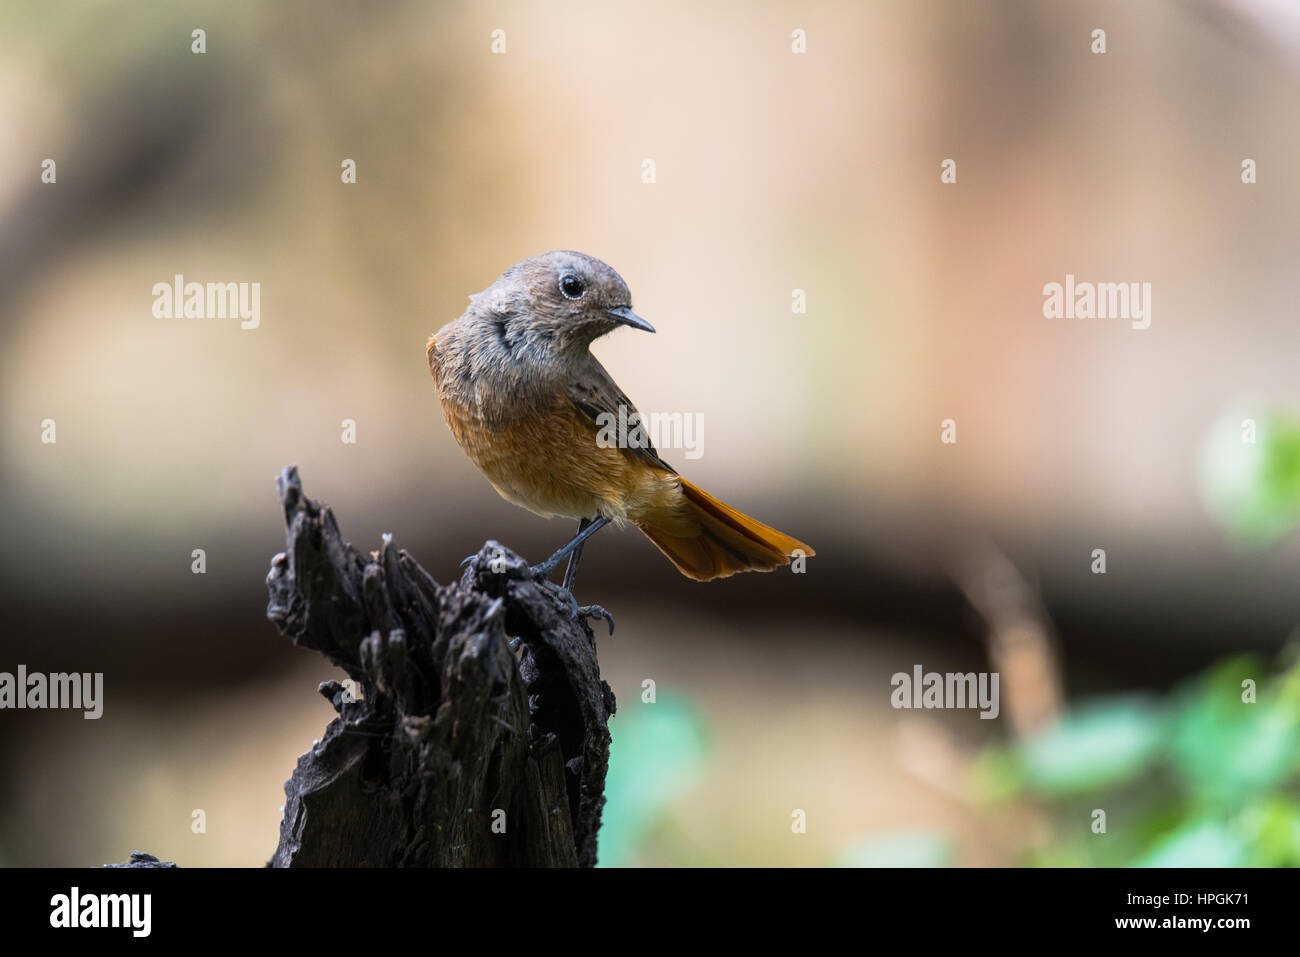 Black redstart a small passerine birds and a migratory birds perched - Stock Image